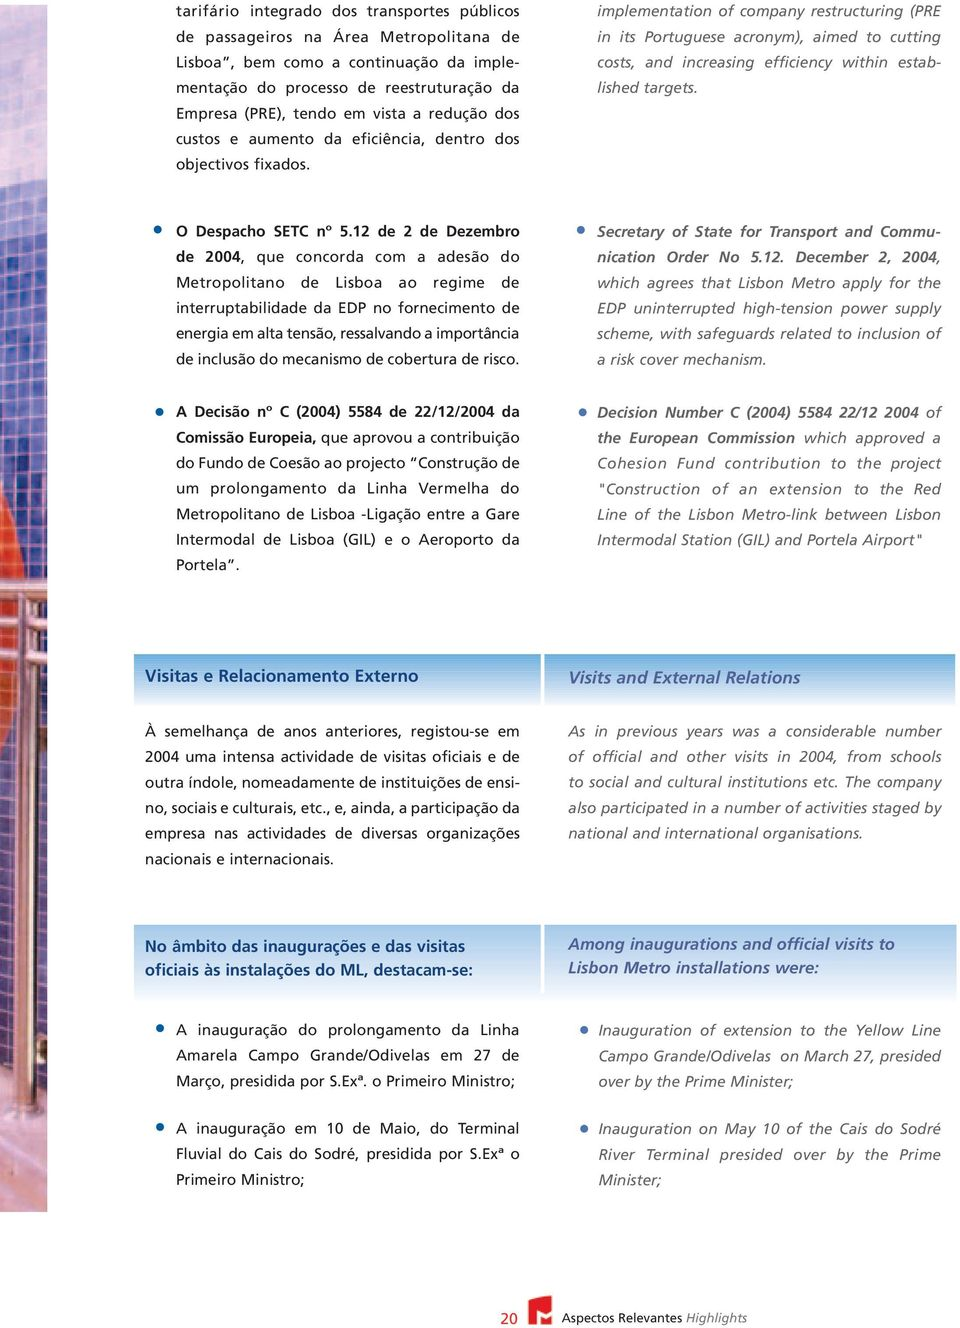 implementation of company restructuring (PRE in its Portuguese acronym), aimed to cutting costs, and increasing efficiency within established targets. O Despacho SETC nº 5.